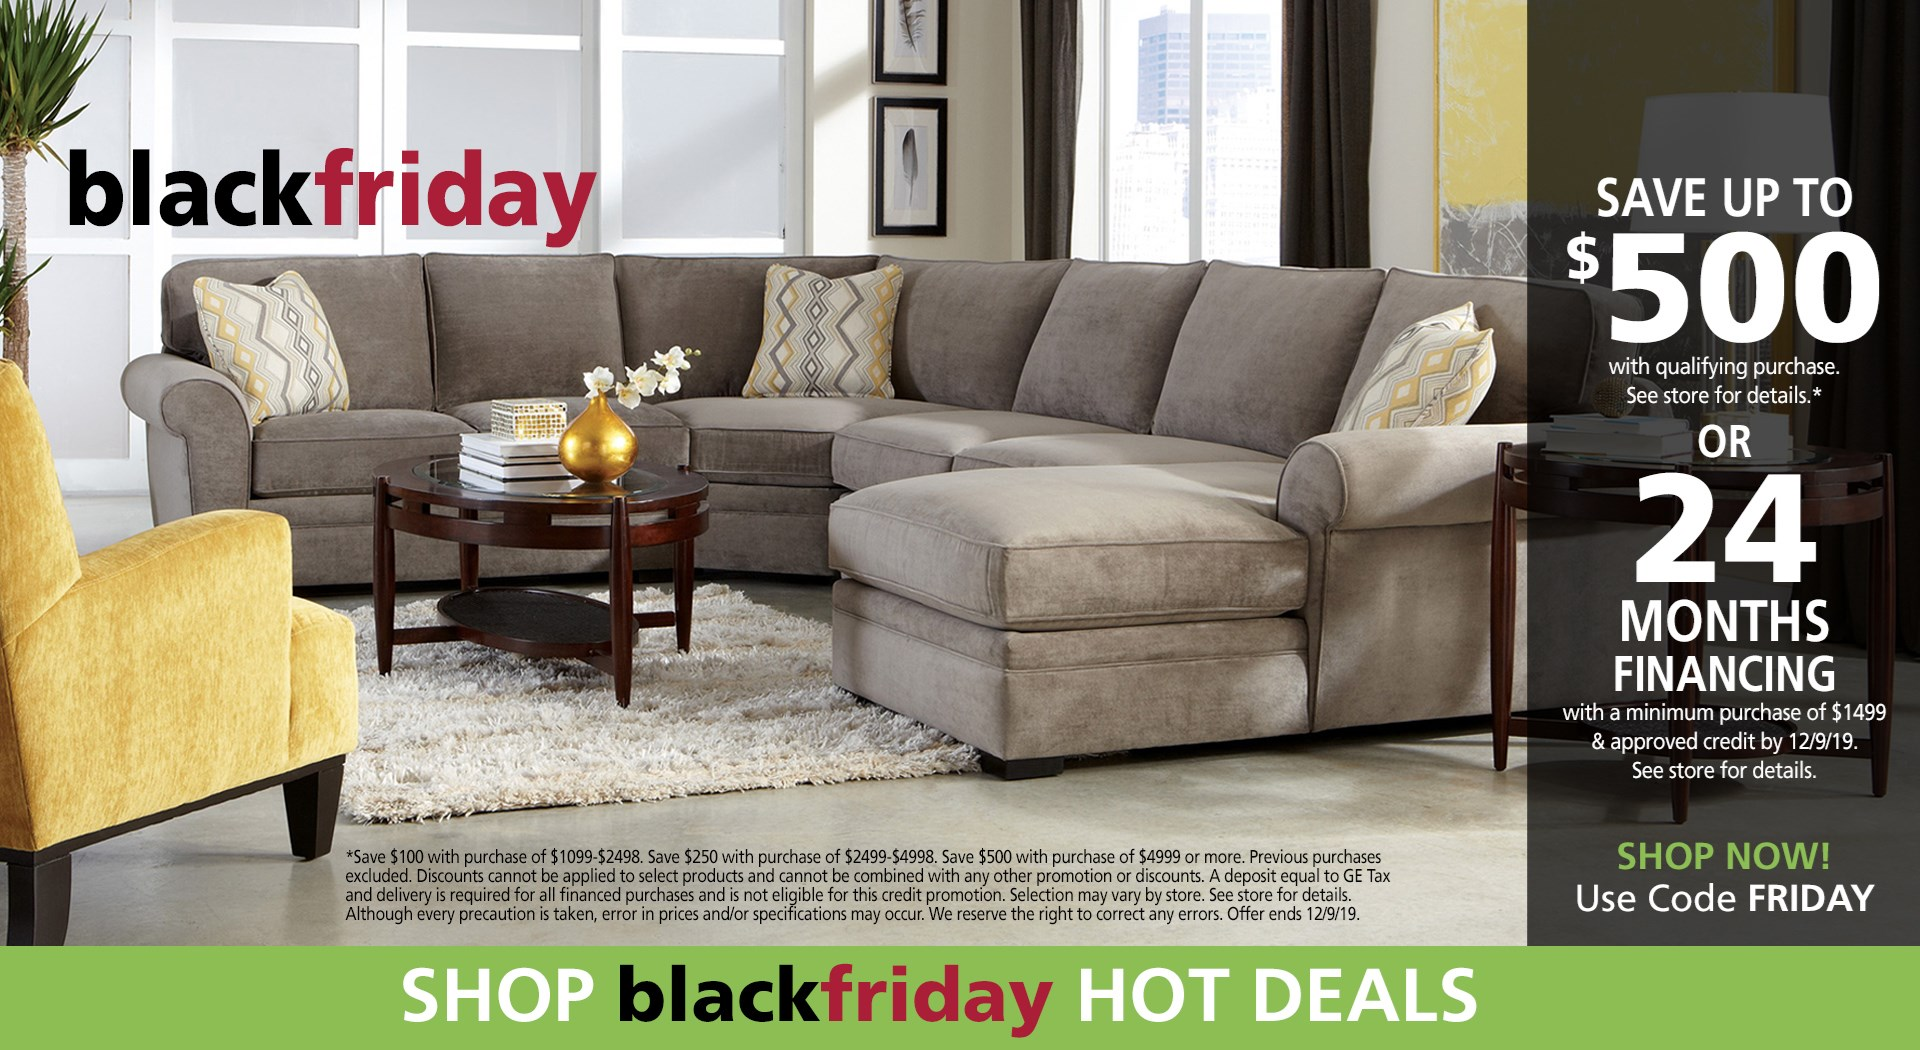 Save up to $500 (use code FRIDAY) or ask about 24 months financing; see store for details